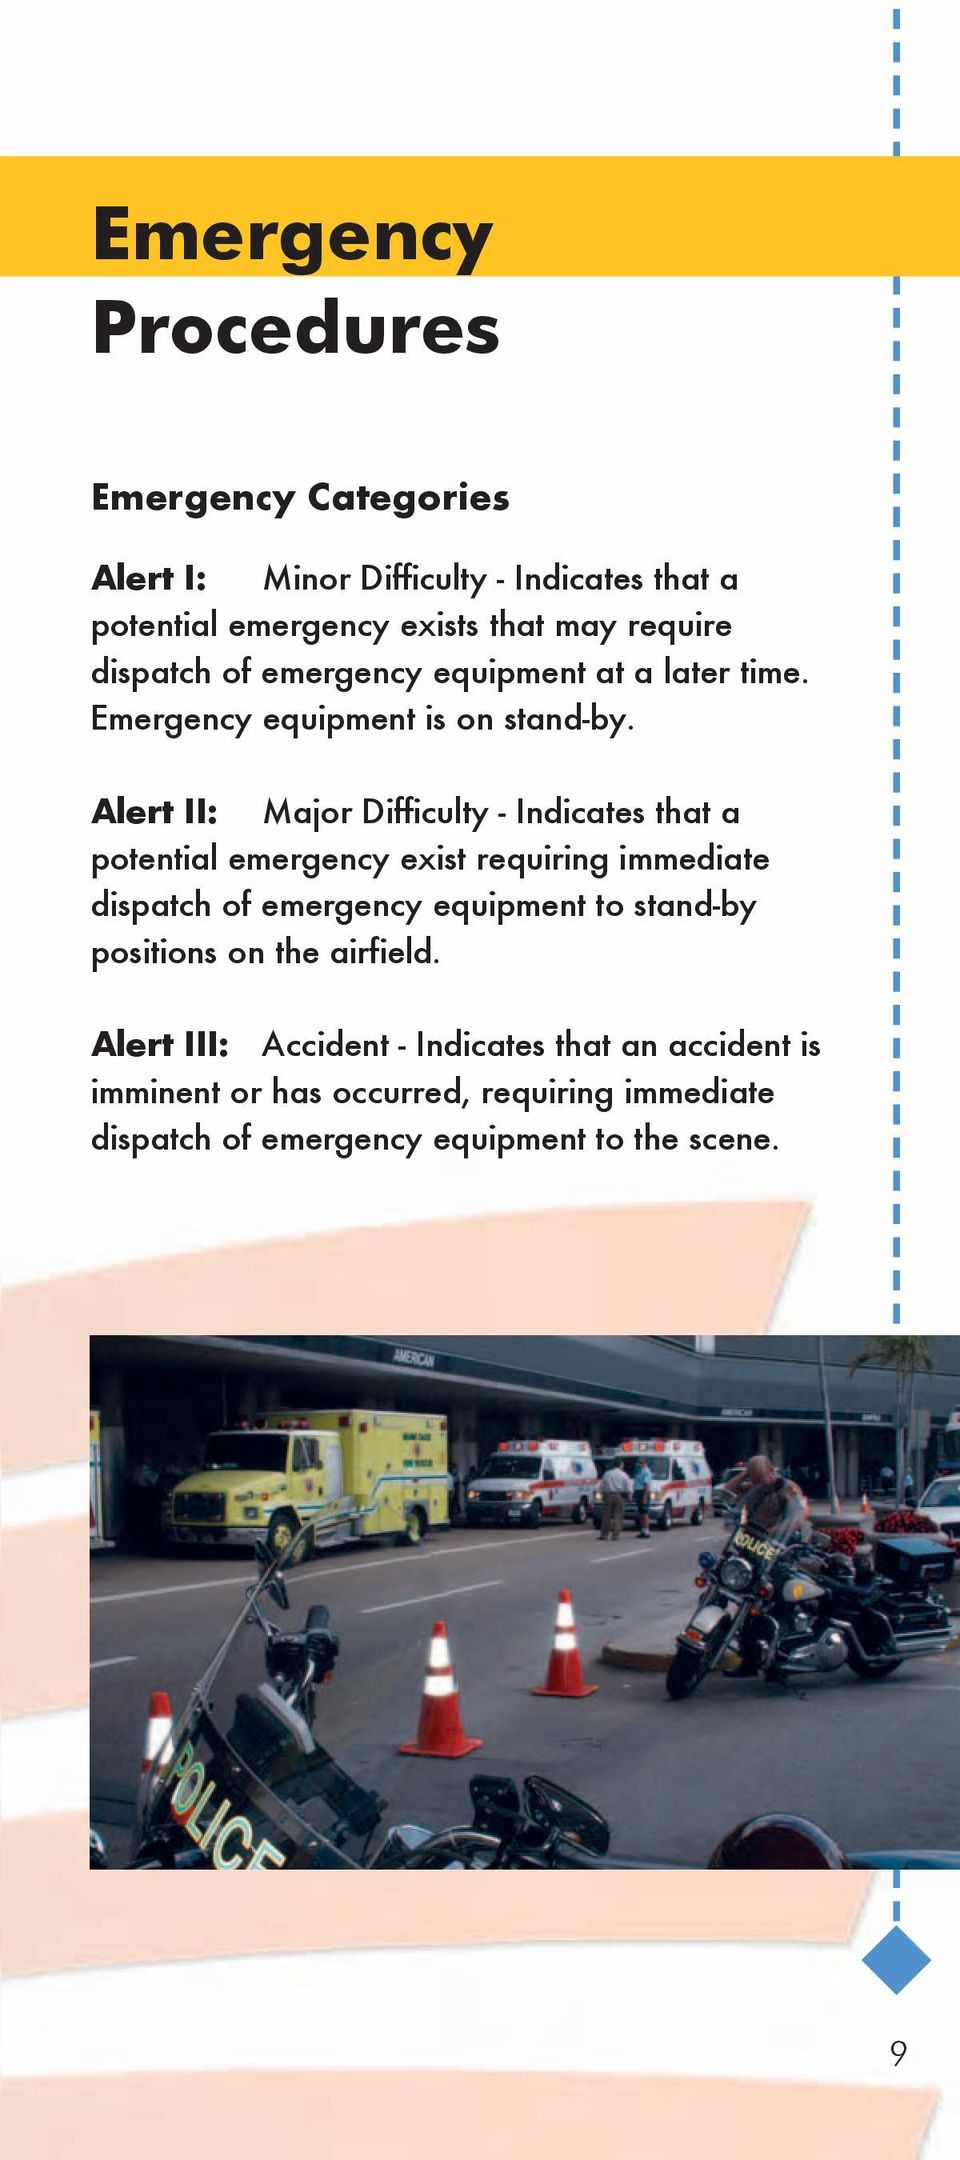 Alert II: Major Difficulty - Indicates that a potential emergency exist requiring immediate dispatch of emergency equipment to